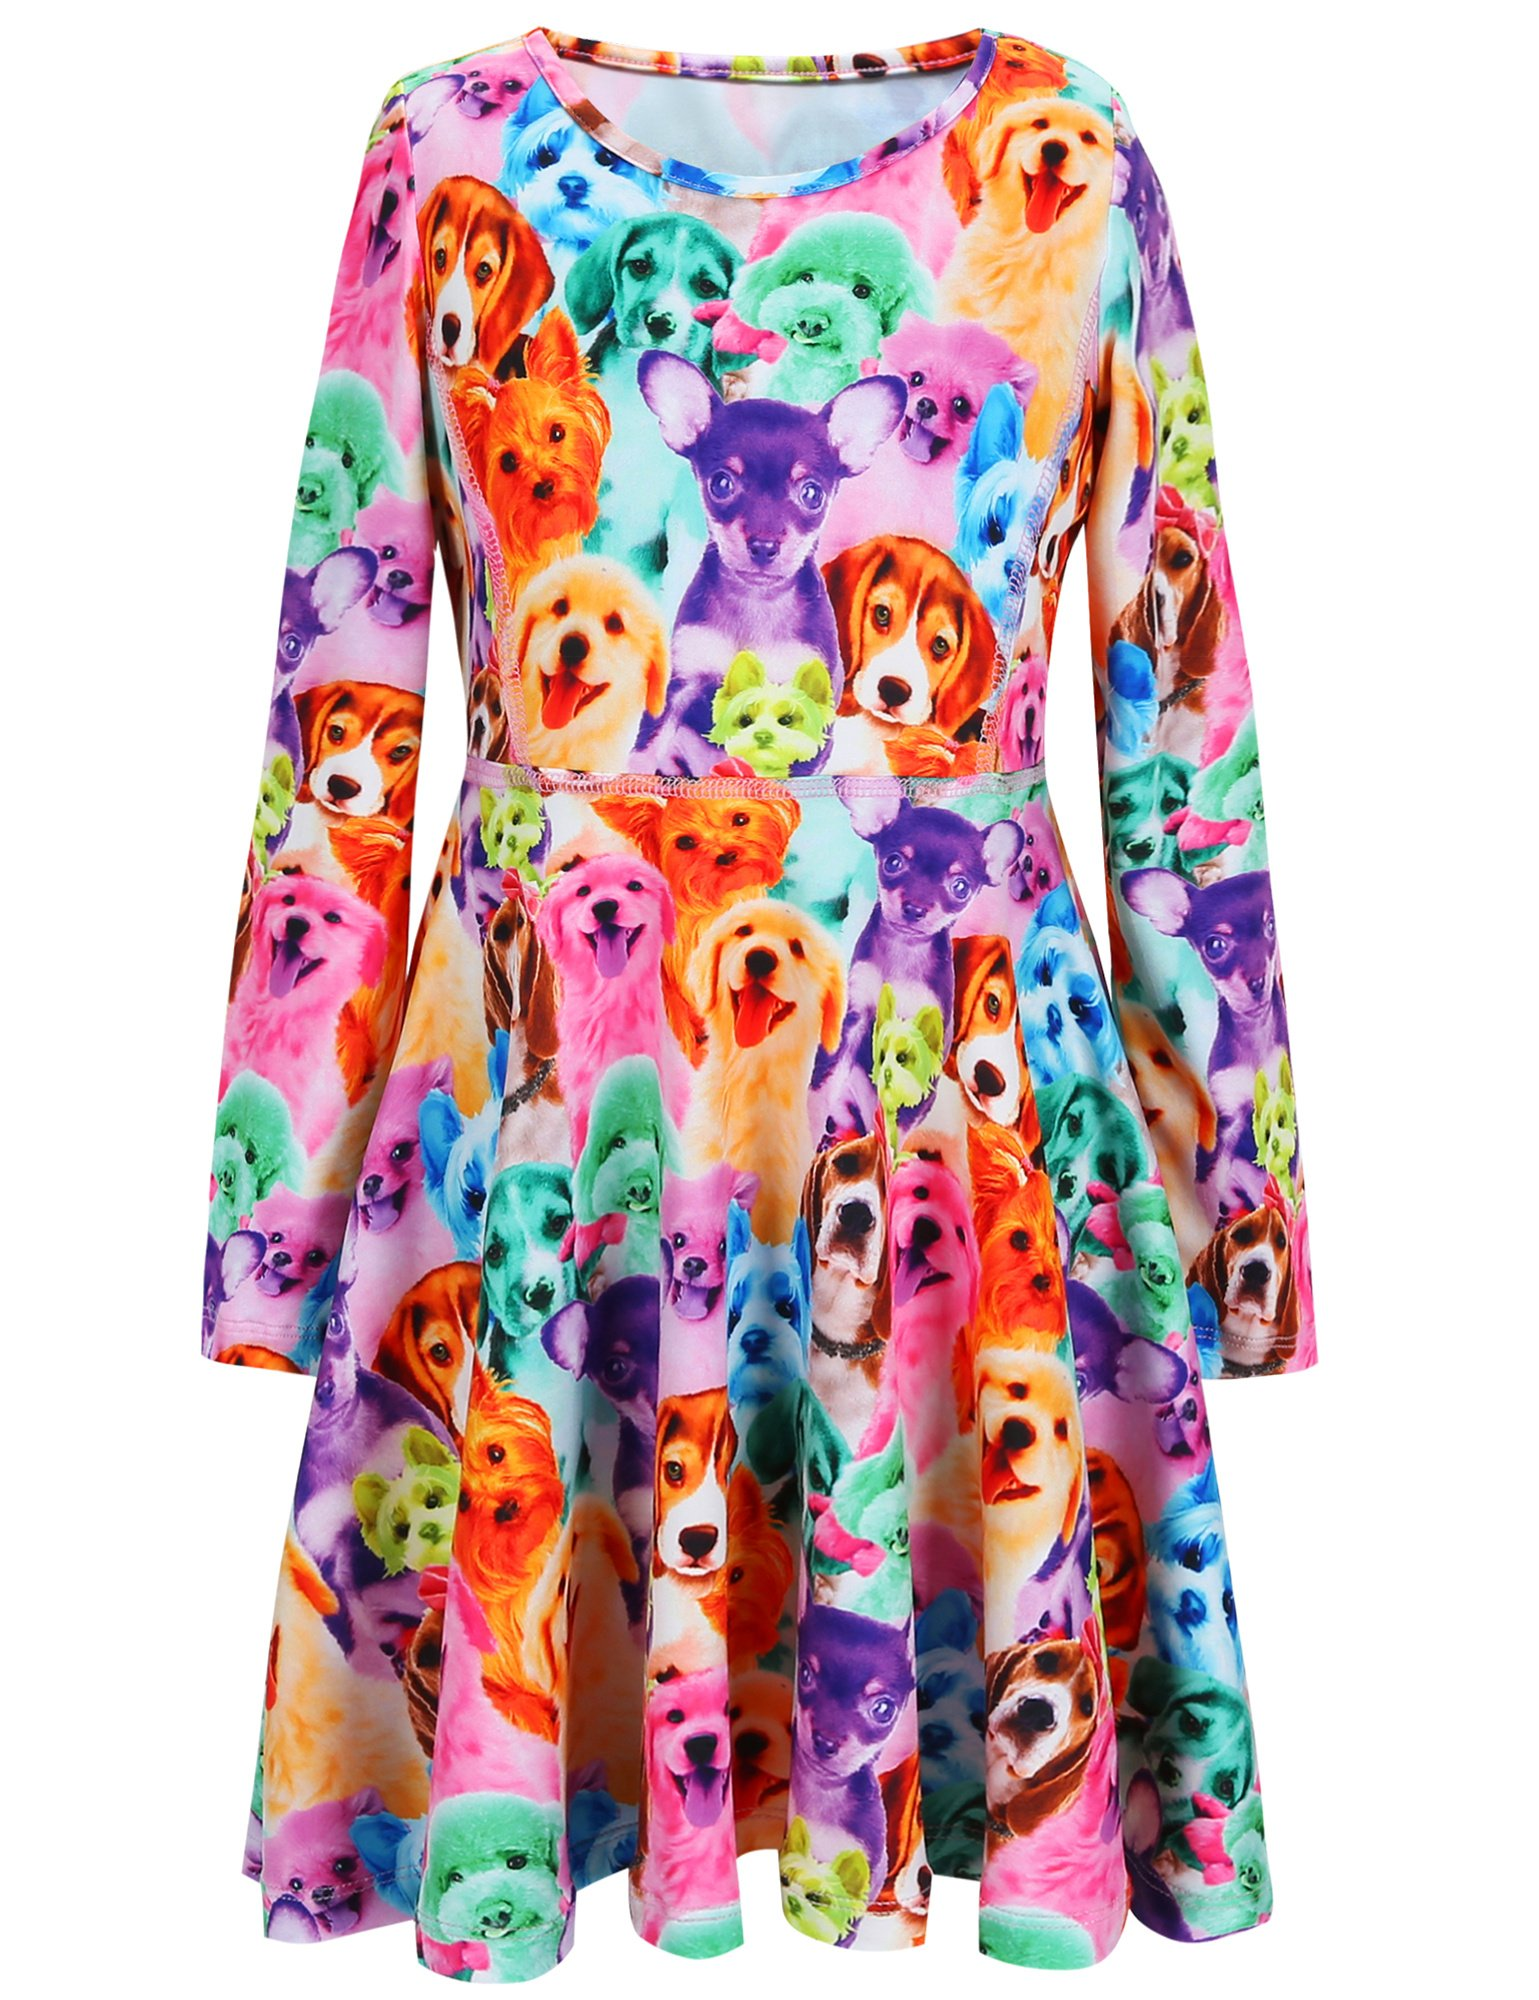 Jxstar Cartoon Girls Dress Cute Clothes Birthday4T 5T Casual Holiday Dog 110 Rainbow Dog Fall 3-4Years Height 41in